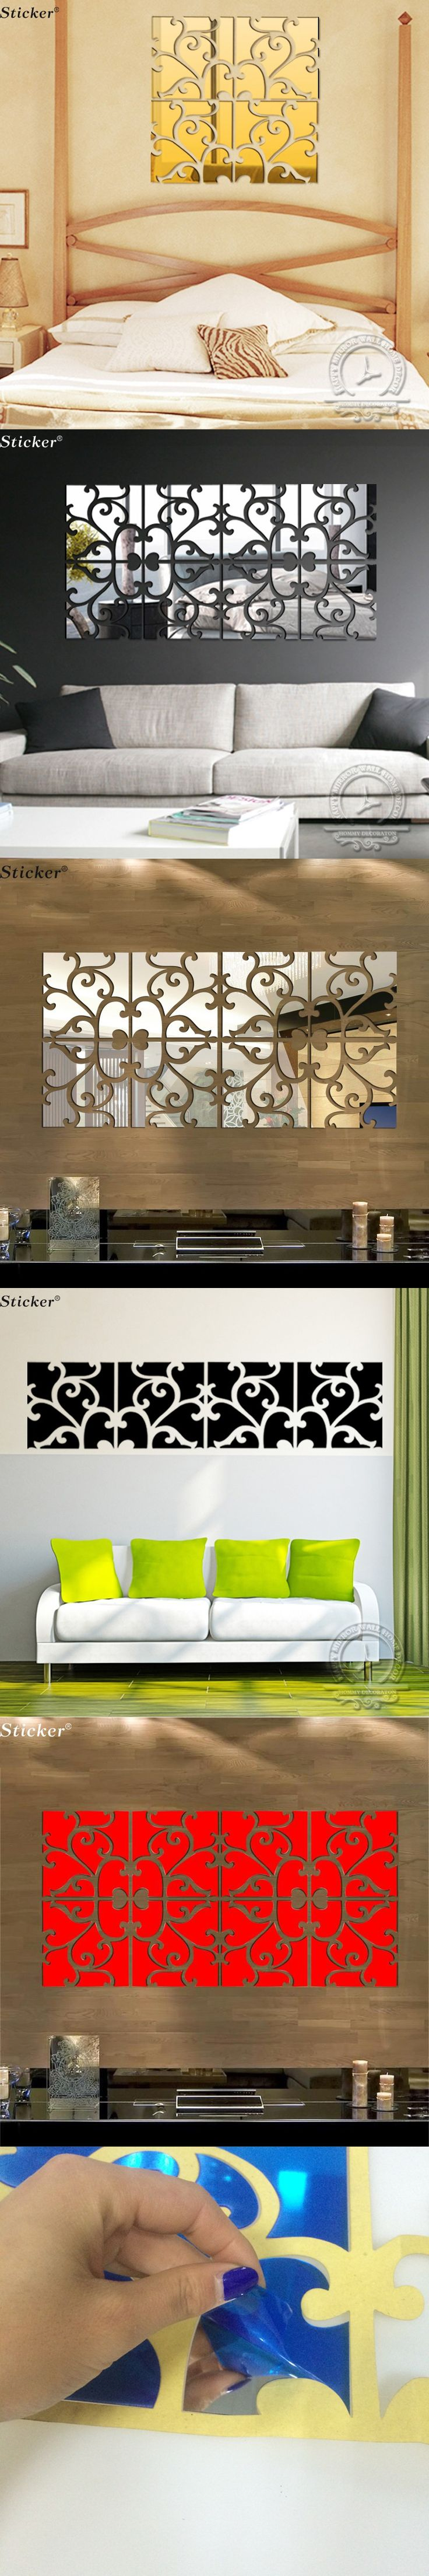 Creative 3d mirror wall stickers 30x60cm/set Diy acrylic mirror surface Tv background wall sticker Home Decoration $17.9